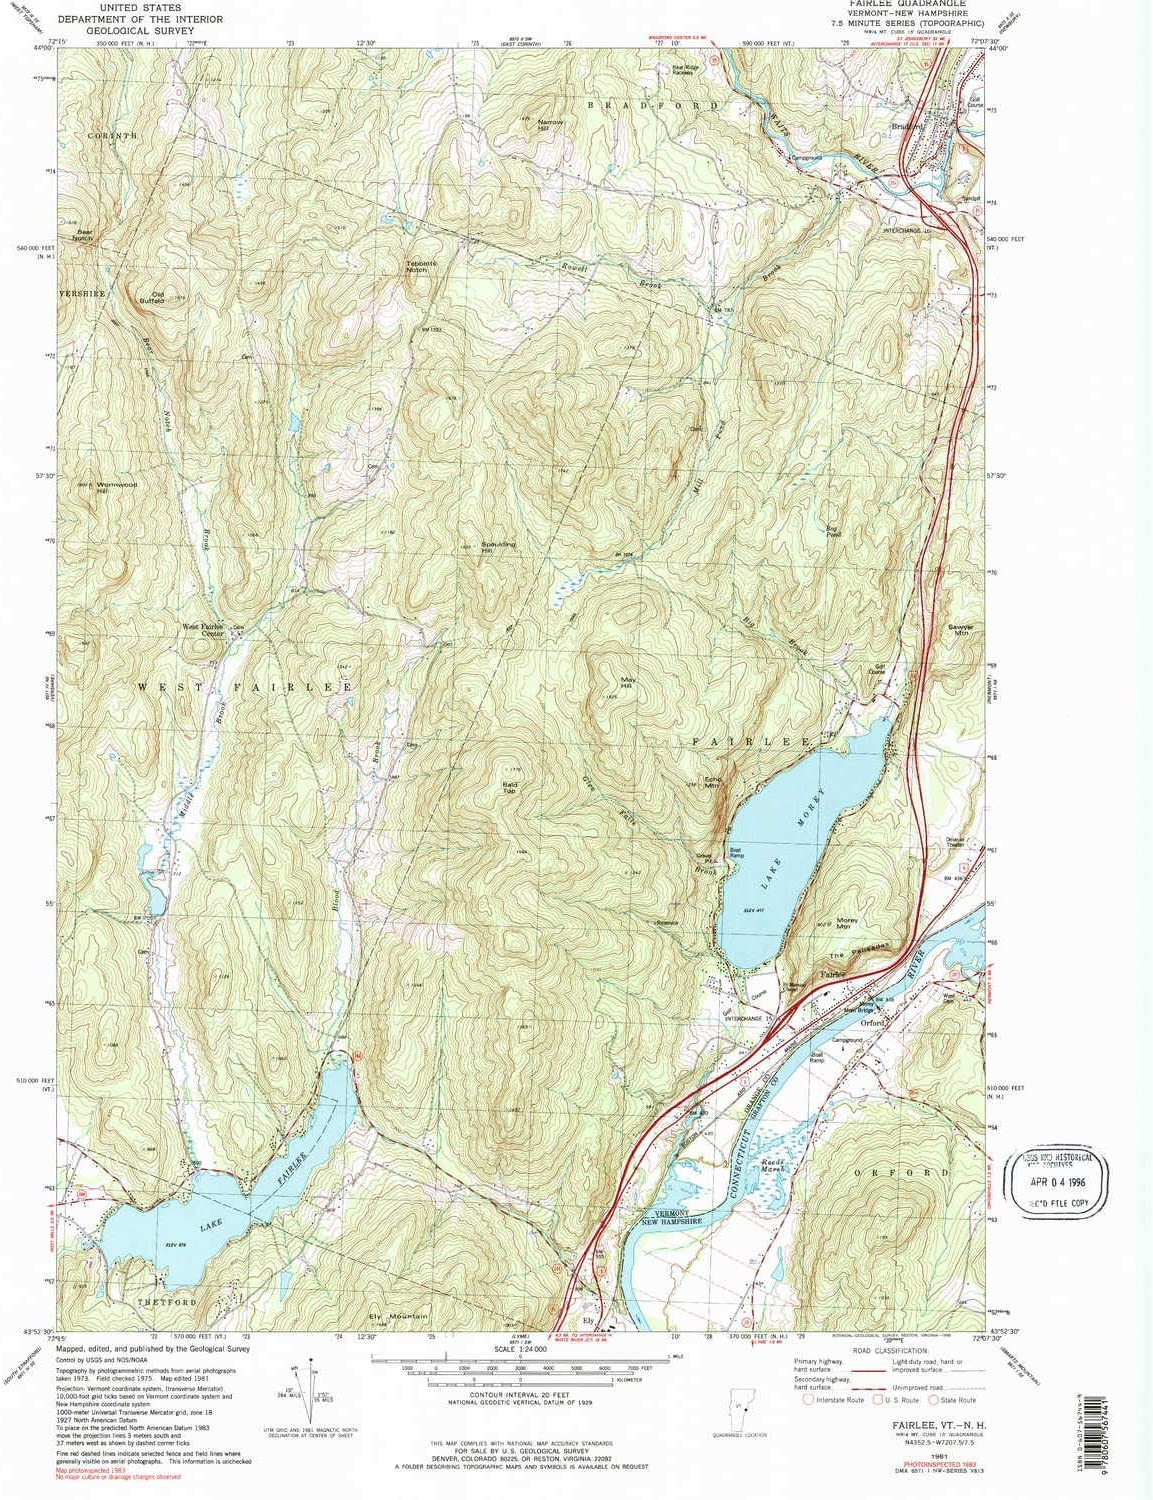 1981 Historical 26.7 x 22 in 1:24000 Scale YellowMaps Fairlee VT topo map 7.5 X 7.5 Minute Updated 1990